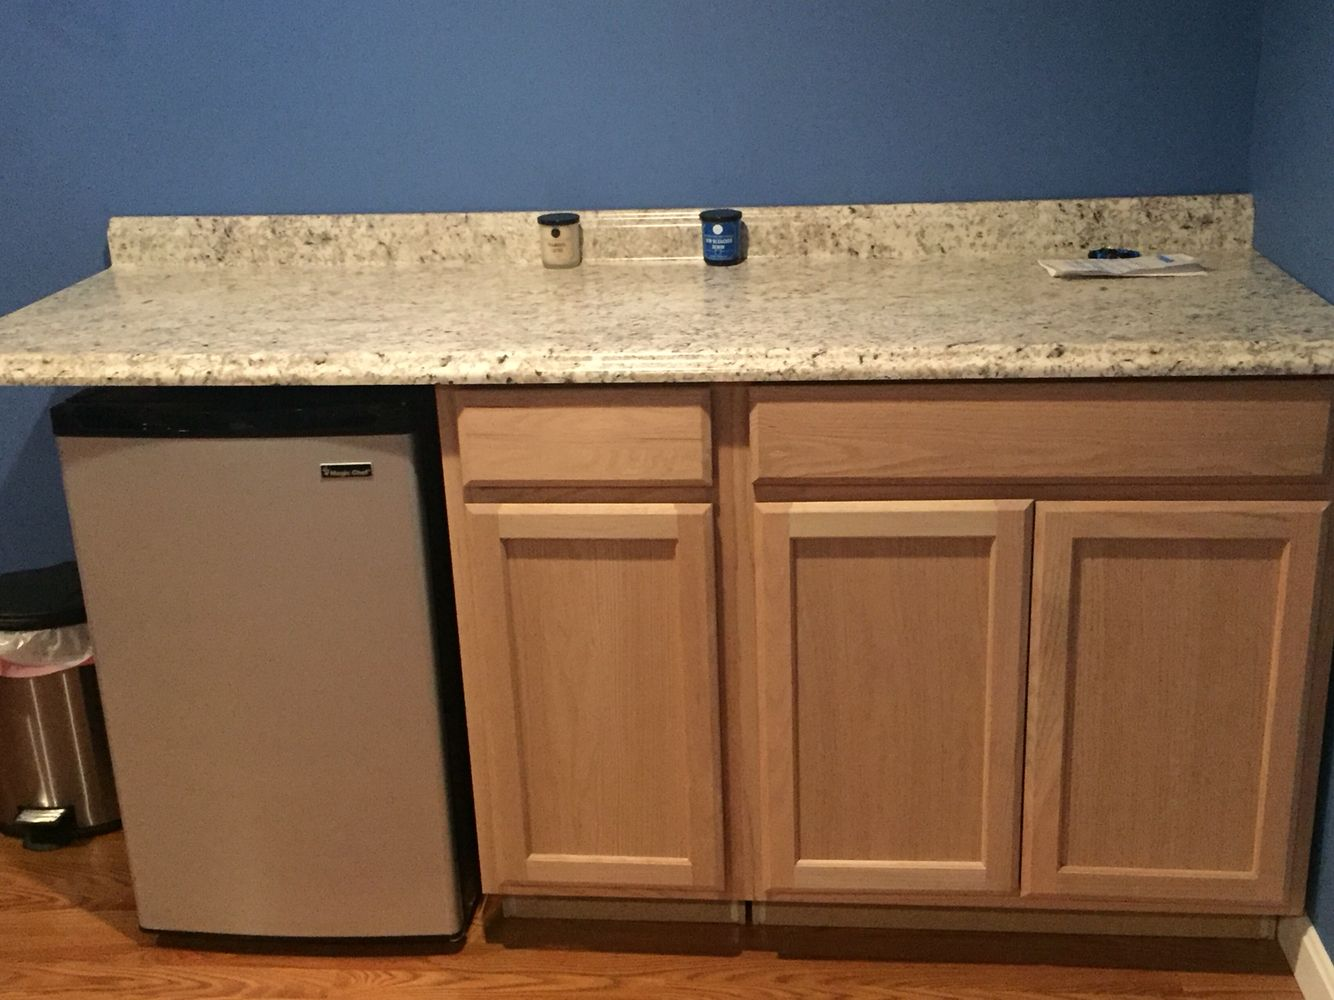 Cabinet And Countertop From Lowes Mini Fridge From Home Depot Total 450 For A Home Made Bar For Basement Homemade Bar Home Mini Bar